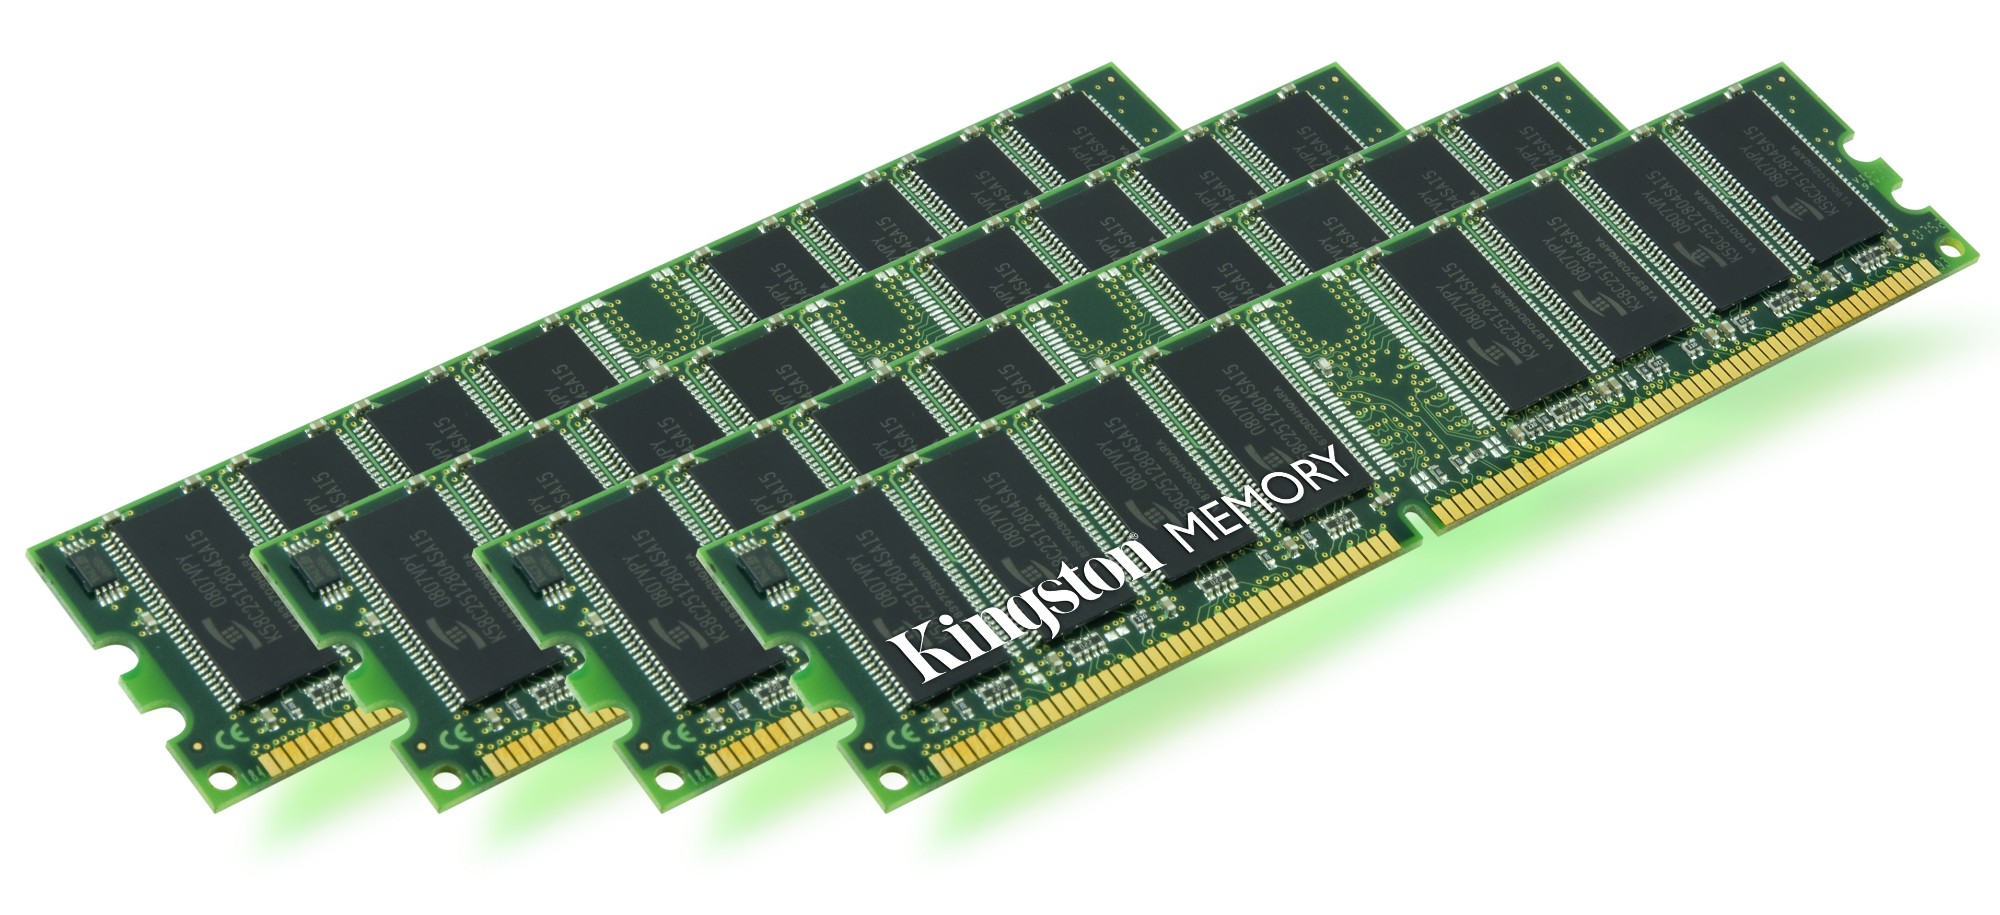 Kingston Technology System Specific Memory 2GB DDR333 Kit memory module DRAM 333 MHz ECC